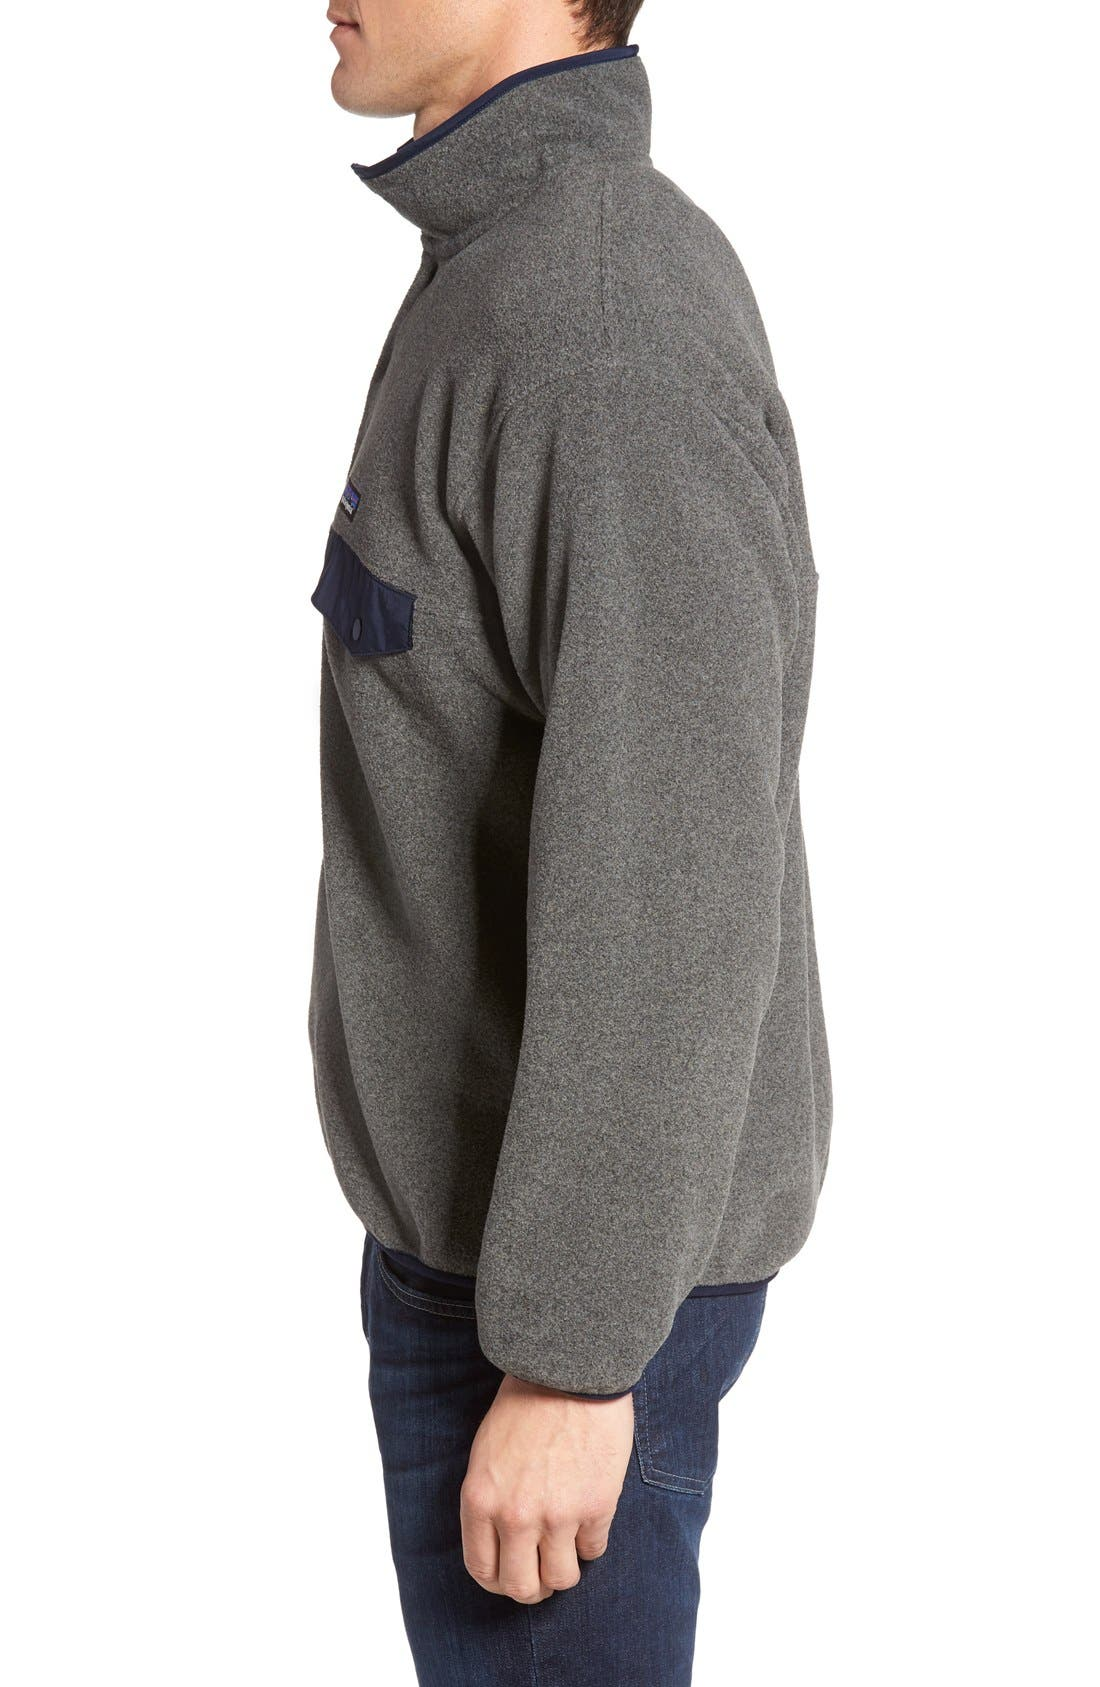 Synchilla<sup>®</sup> Snap-T<sup>®</sup> Pullover,                             Alternate thumbnail 5, color,                             Nickel/ Navy Blue